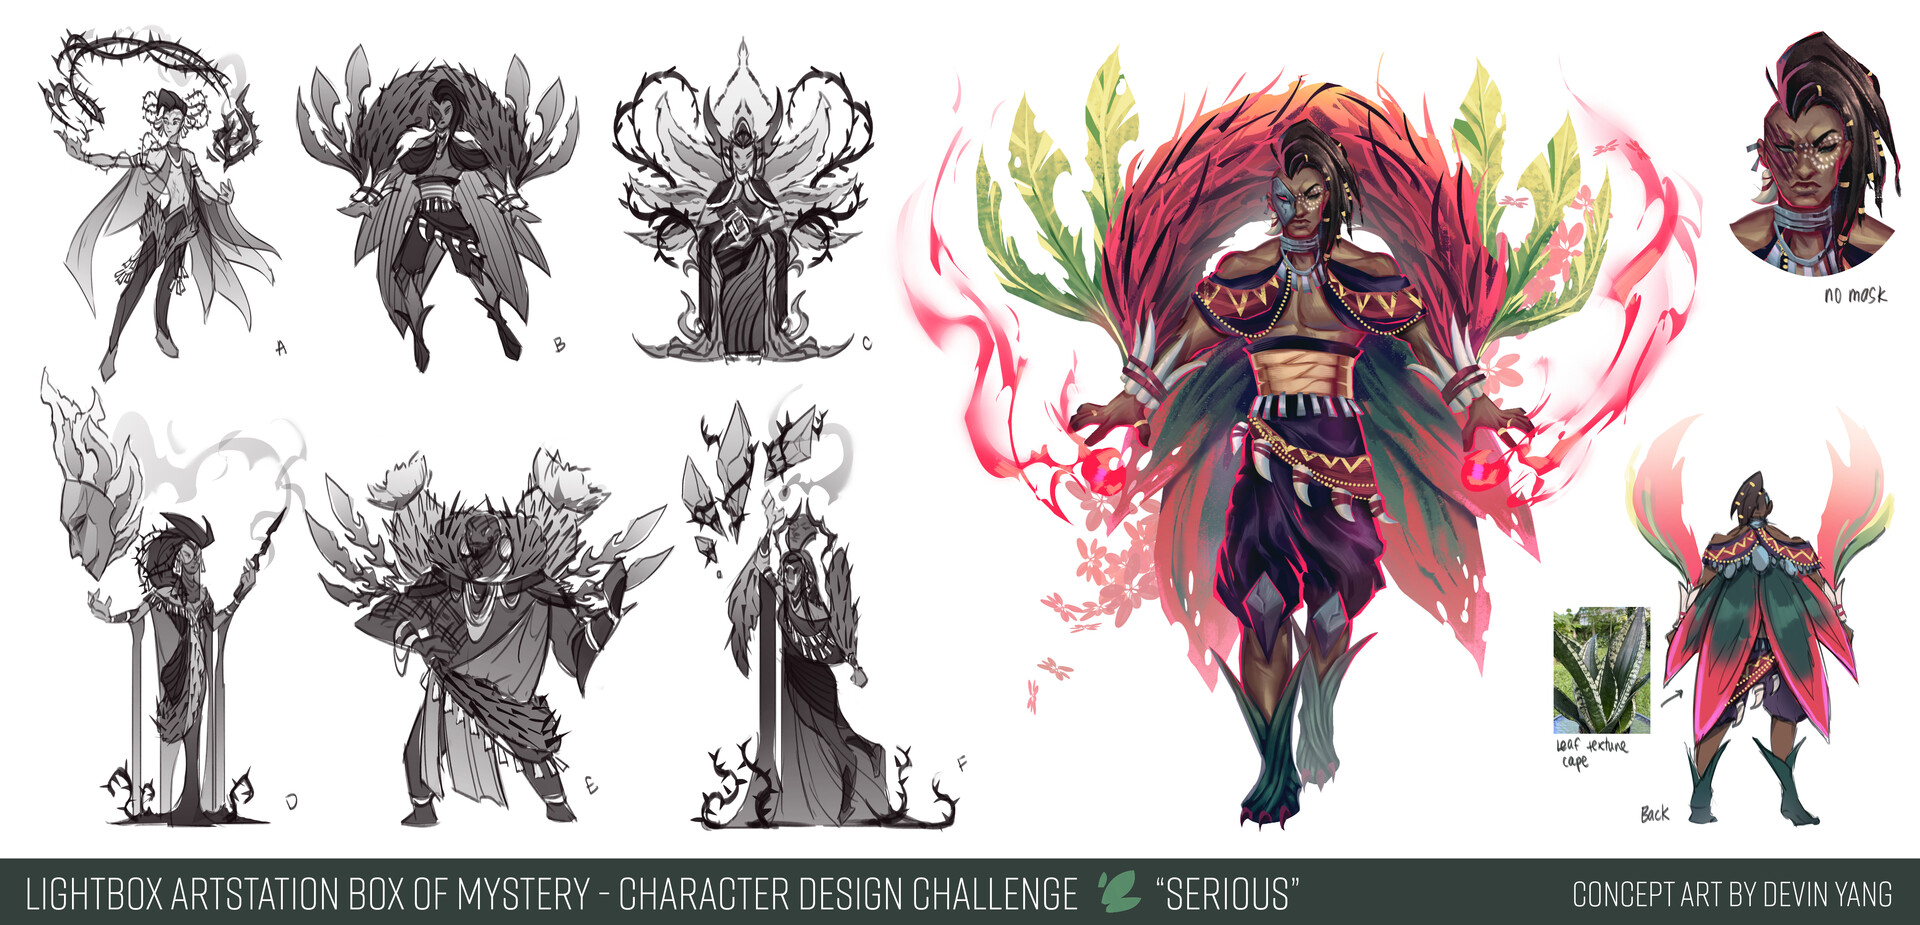 Sketches/exploration + callouts for Serious character